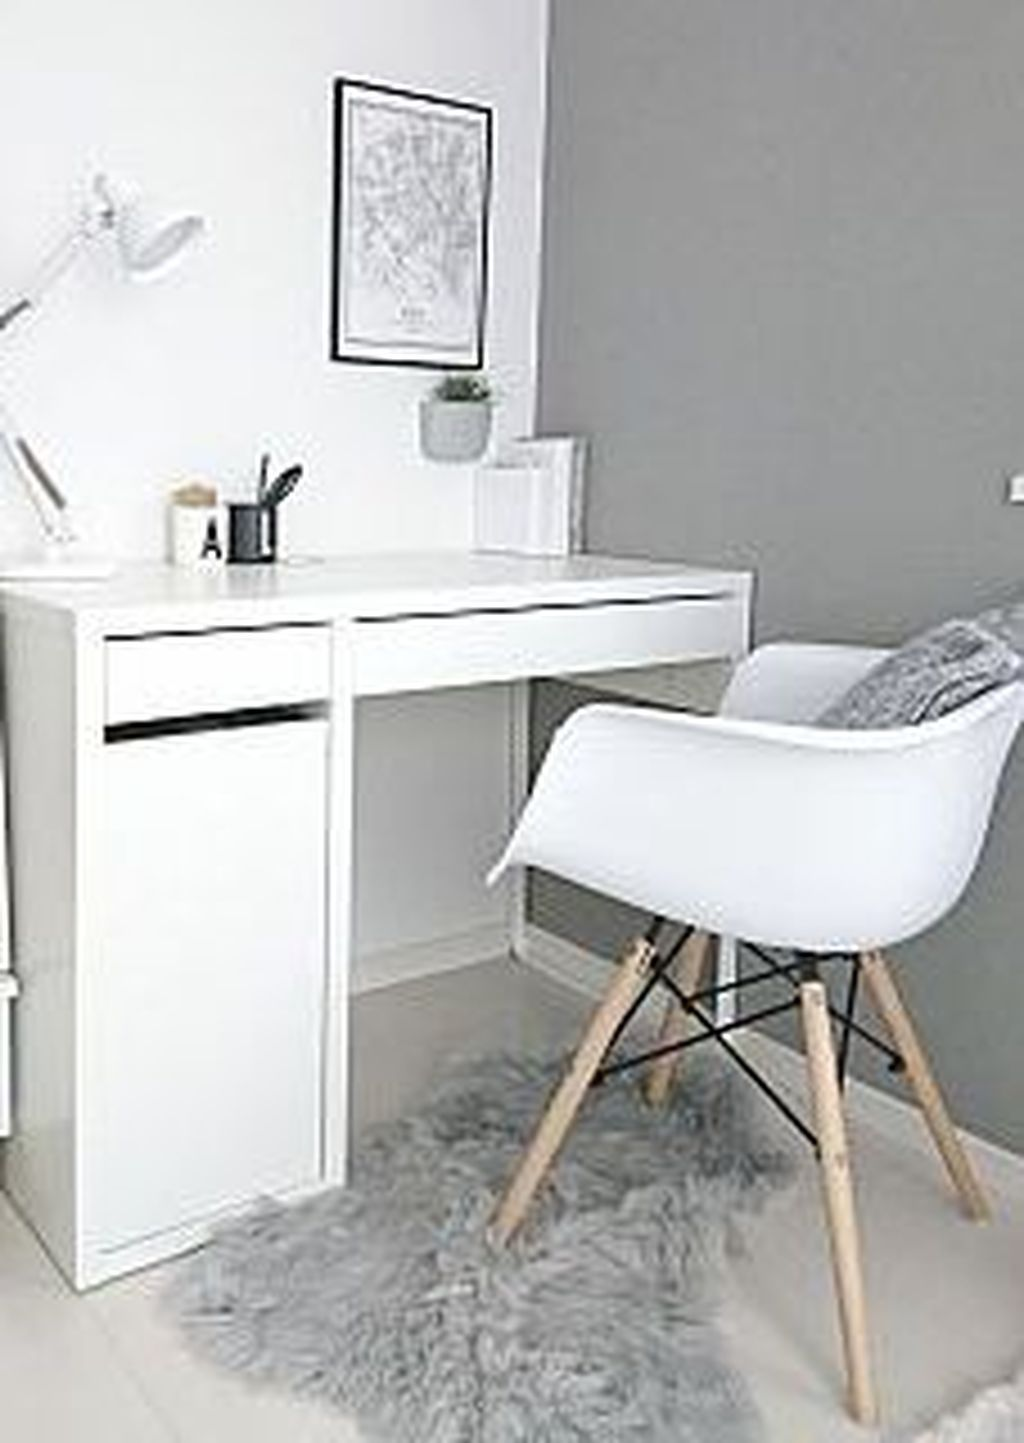 33 Stunning Workspace Design Ideas With Ikea Micke Desk That You Will Like It In 2020 Bedroom Desk Decor Ikea Micke Desk Micke Desk